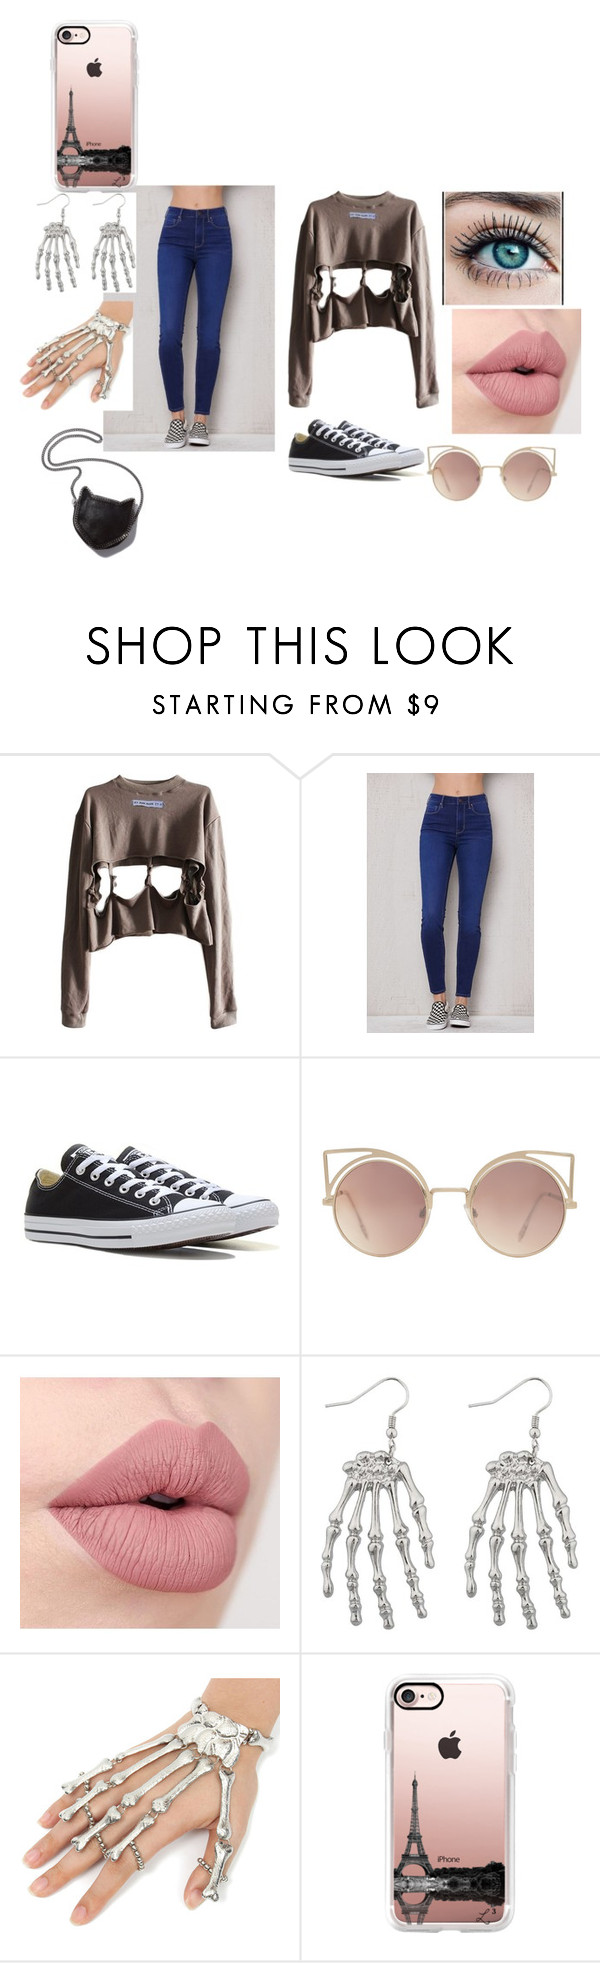 """""""WE DO"""" by esteffa on Polyvore featuring PacSun, Converse, MANGO, STELLA McCARTNEY y Casetify"""